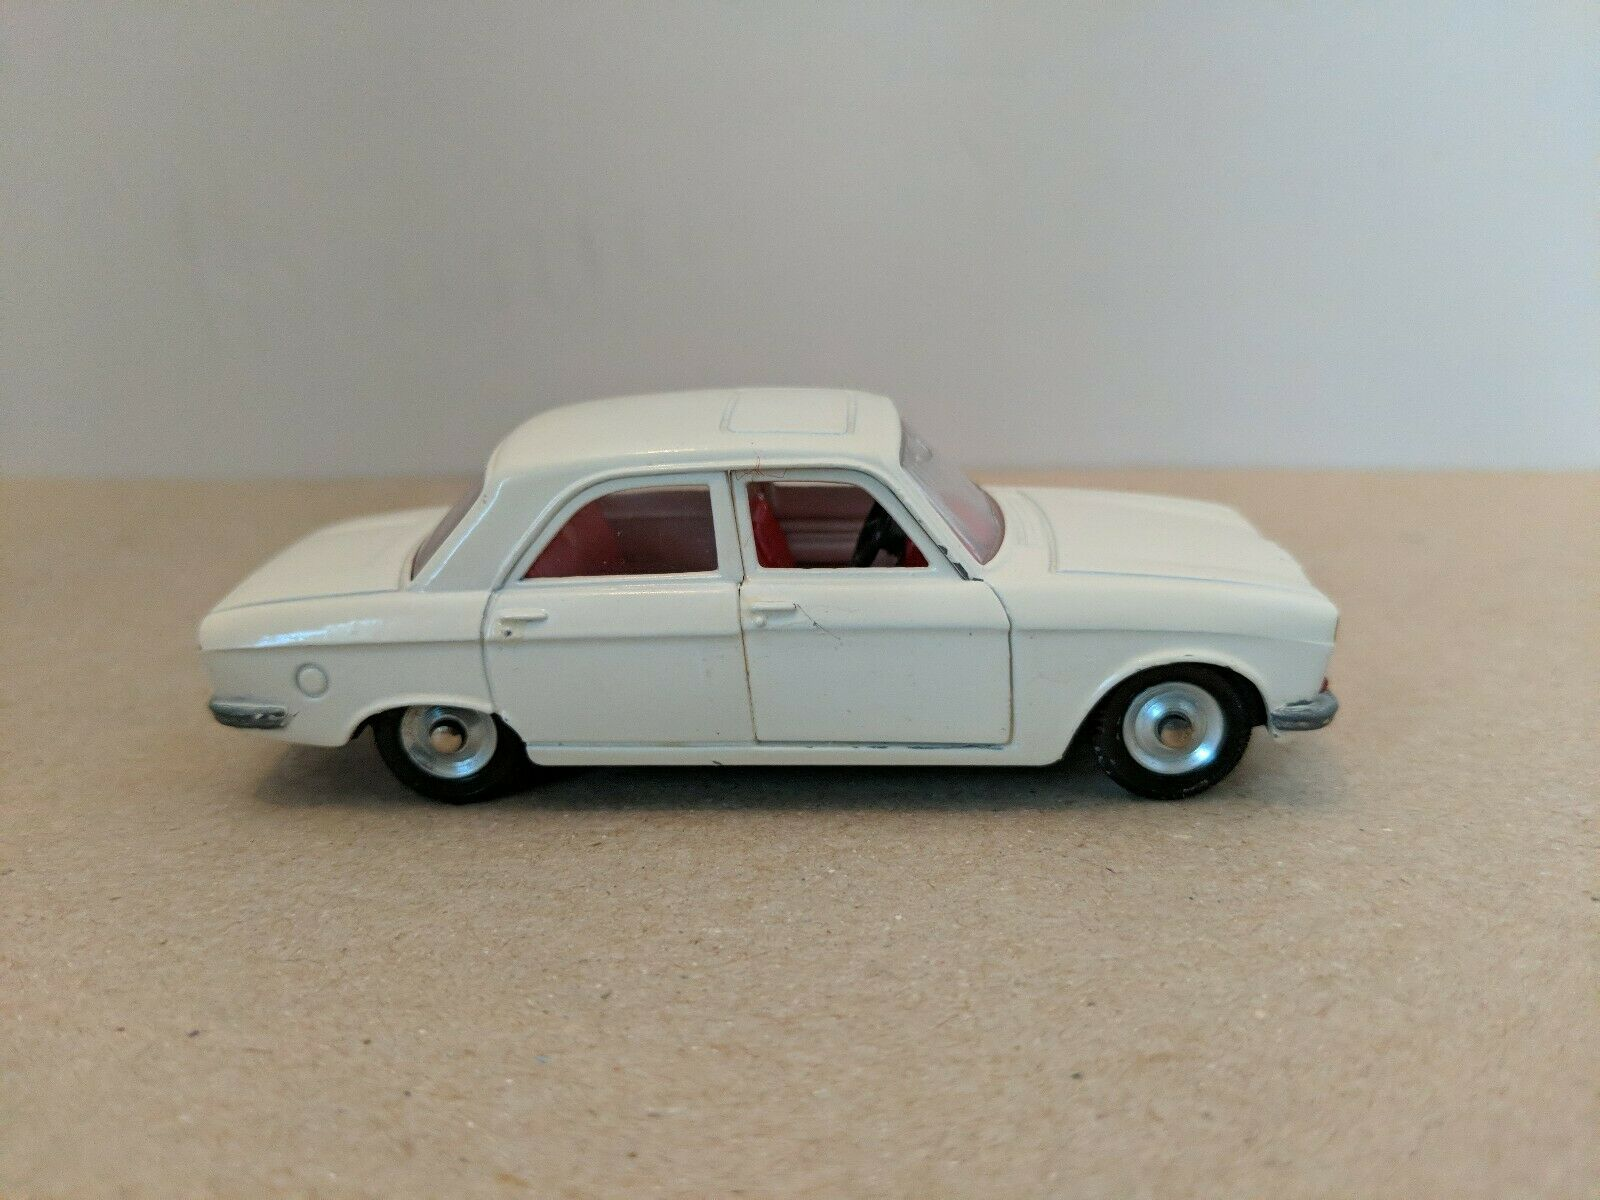 Dinky Toys 1428 Peugeot 304, 1969-71 Made in France, Mint